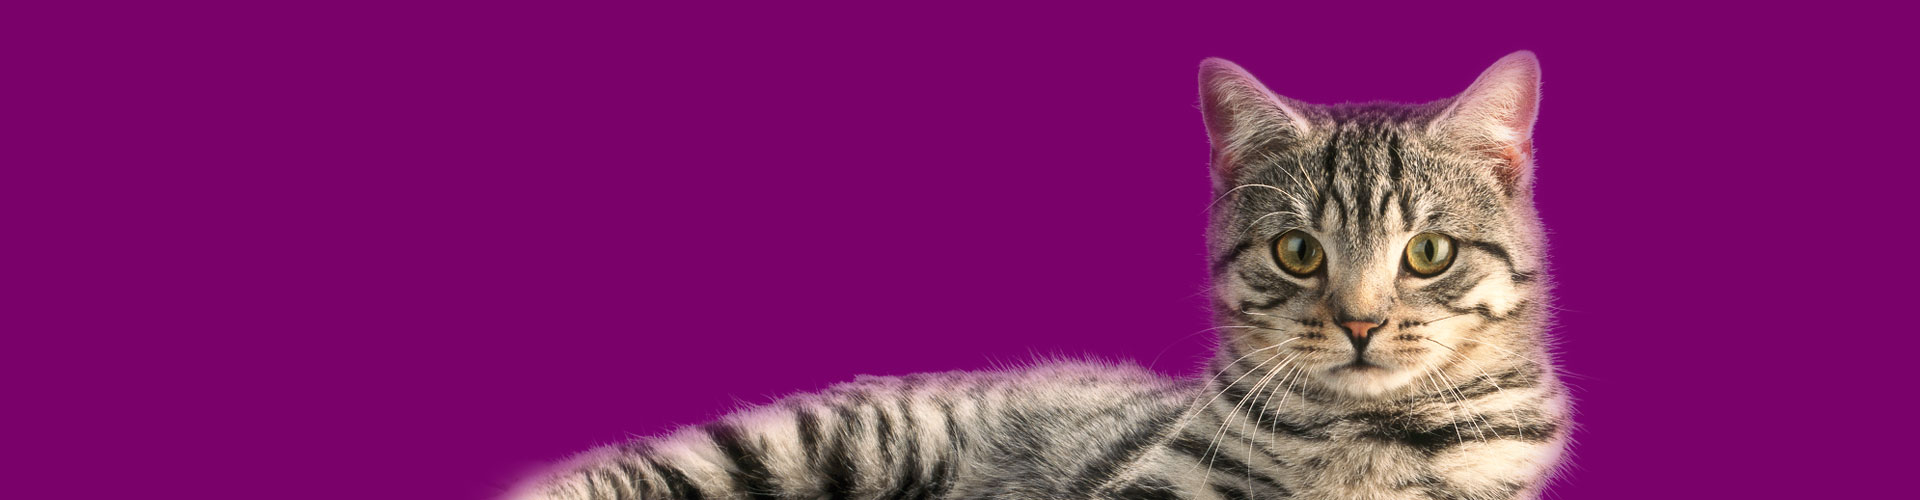 Whiskas® right headline cat picture